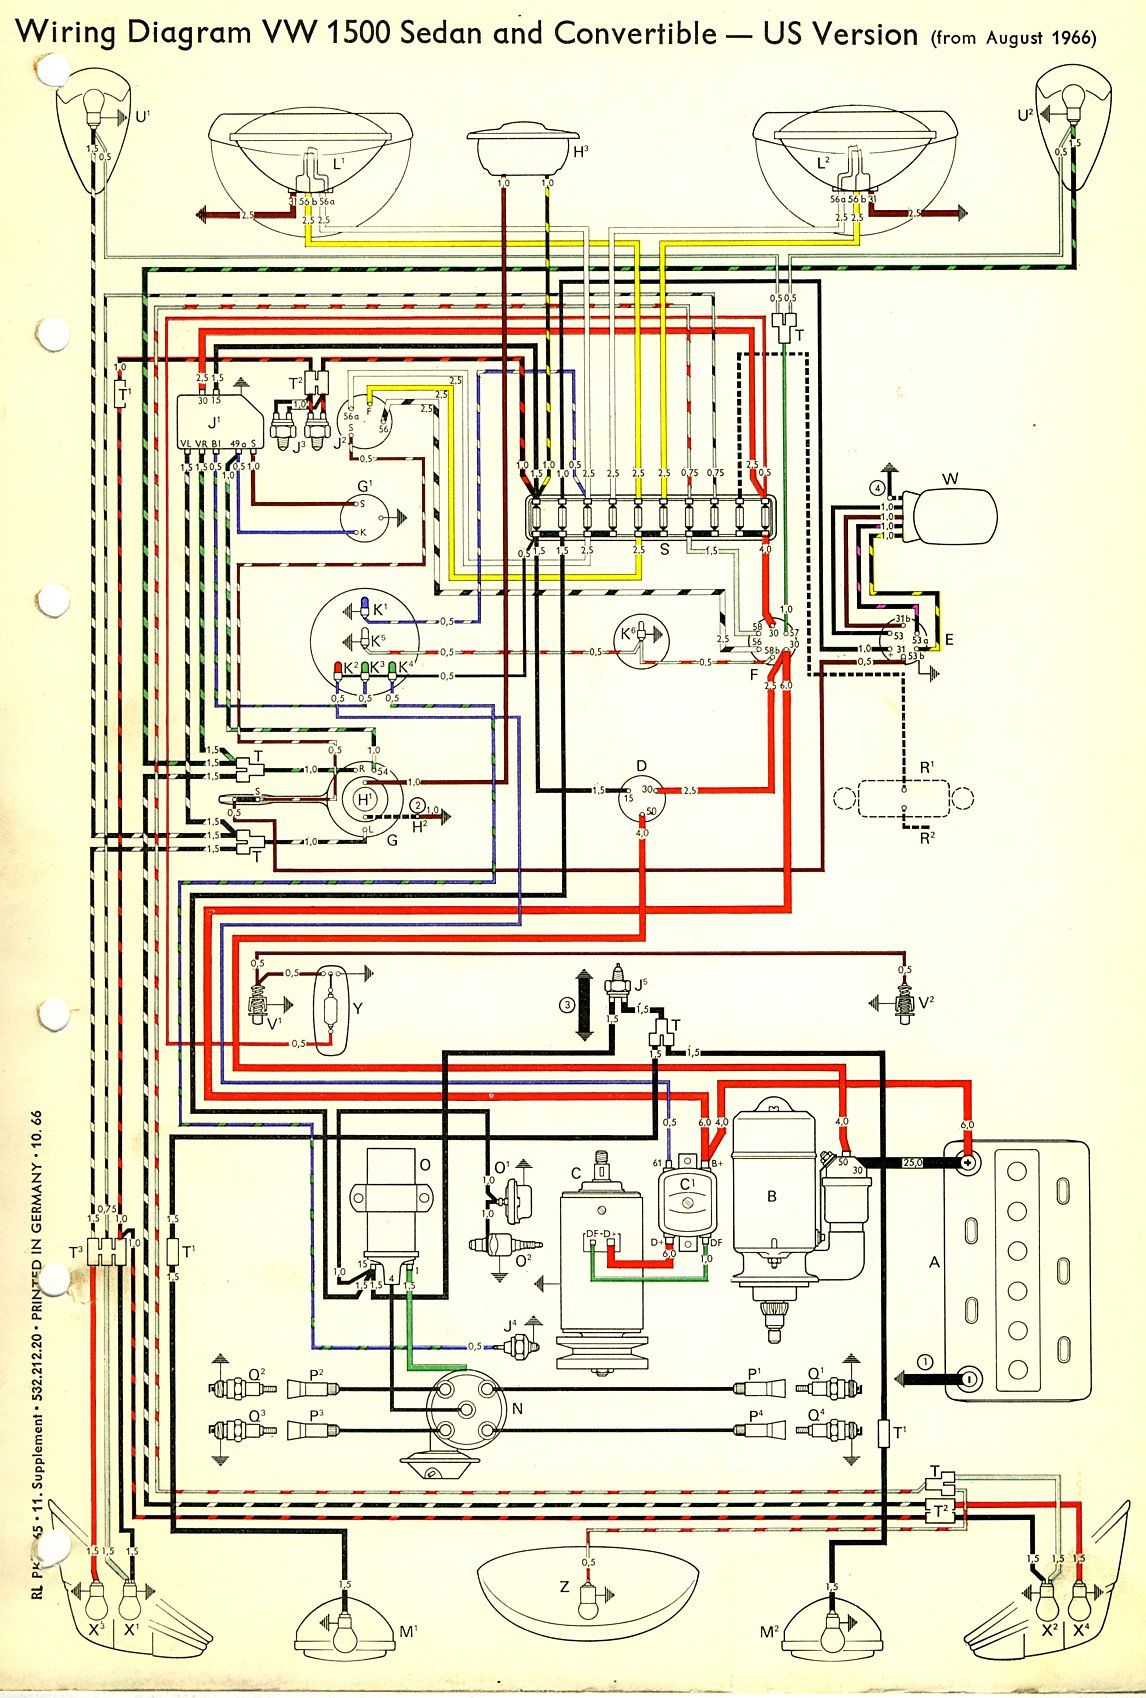 1adf990c0efb617c789fdd21338448b0 1967 beetle wiring diagram (usa) thegoldenbug com best 1967 vw vw beetle 2002 radio wiring diagram at bakdesigns.co